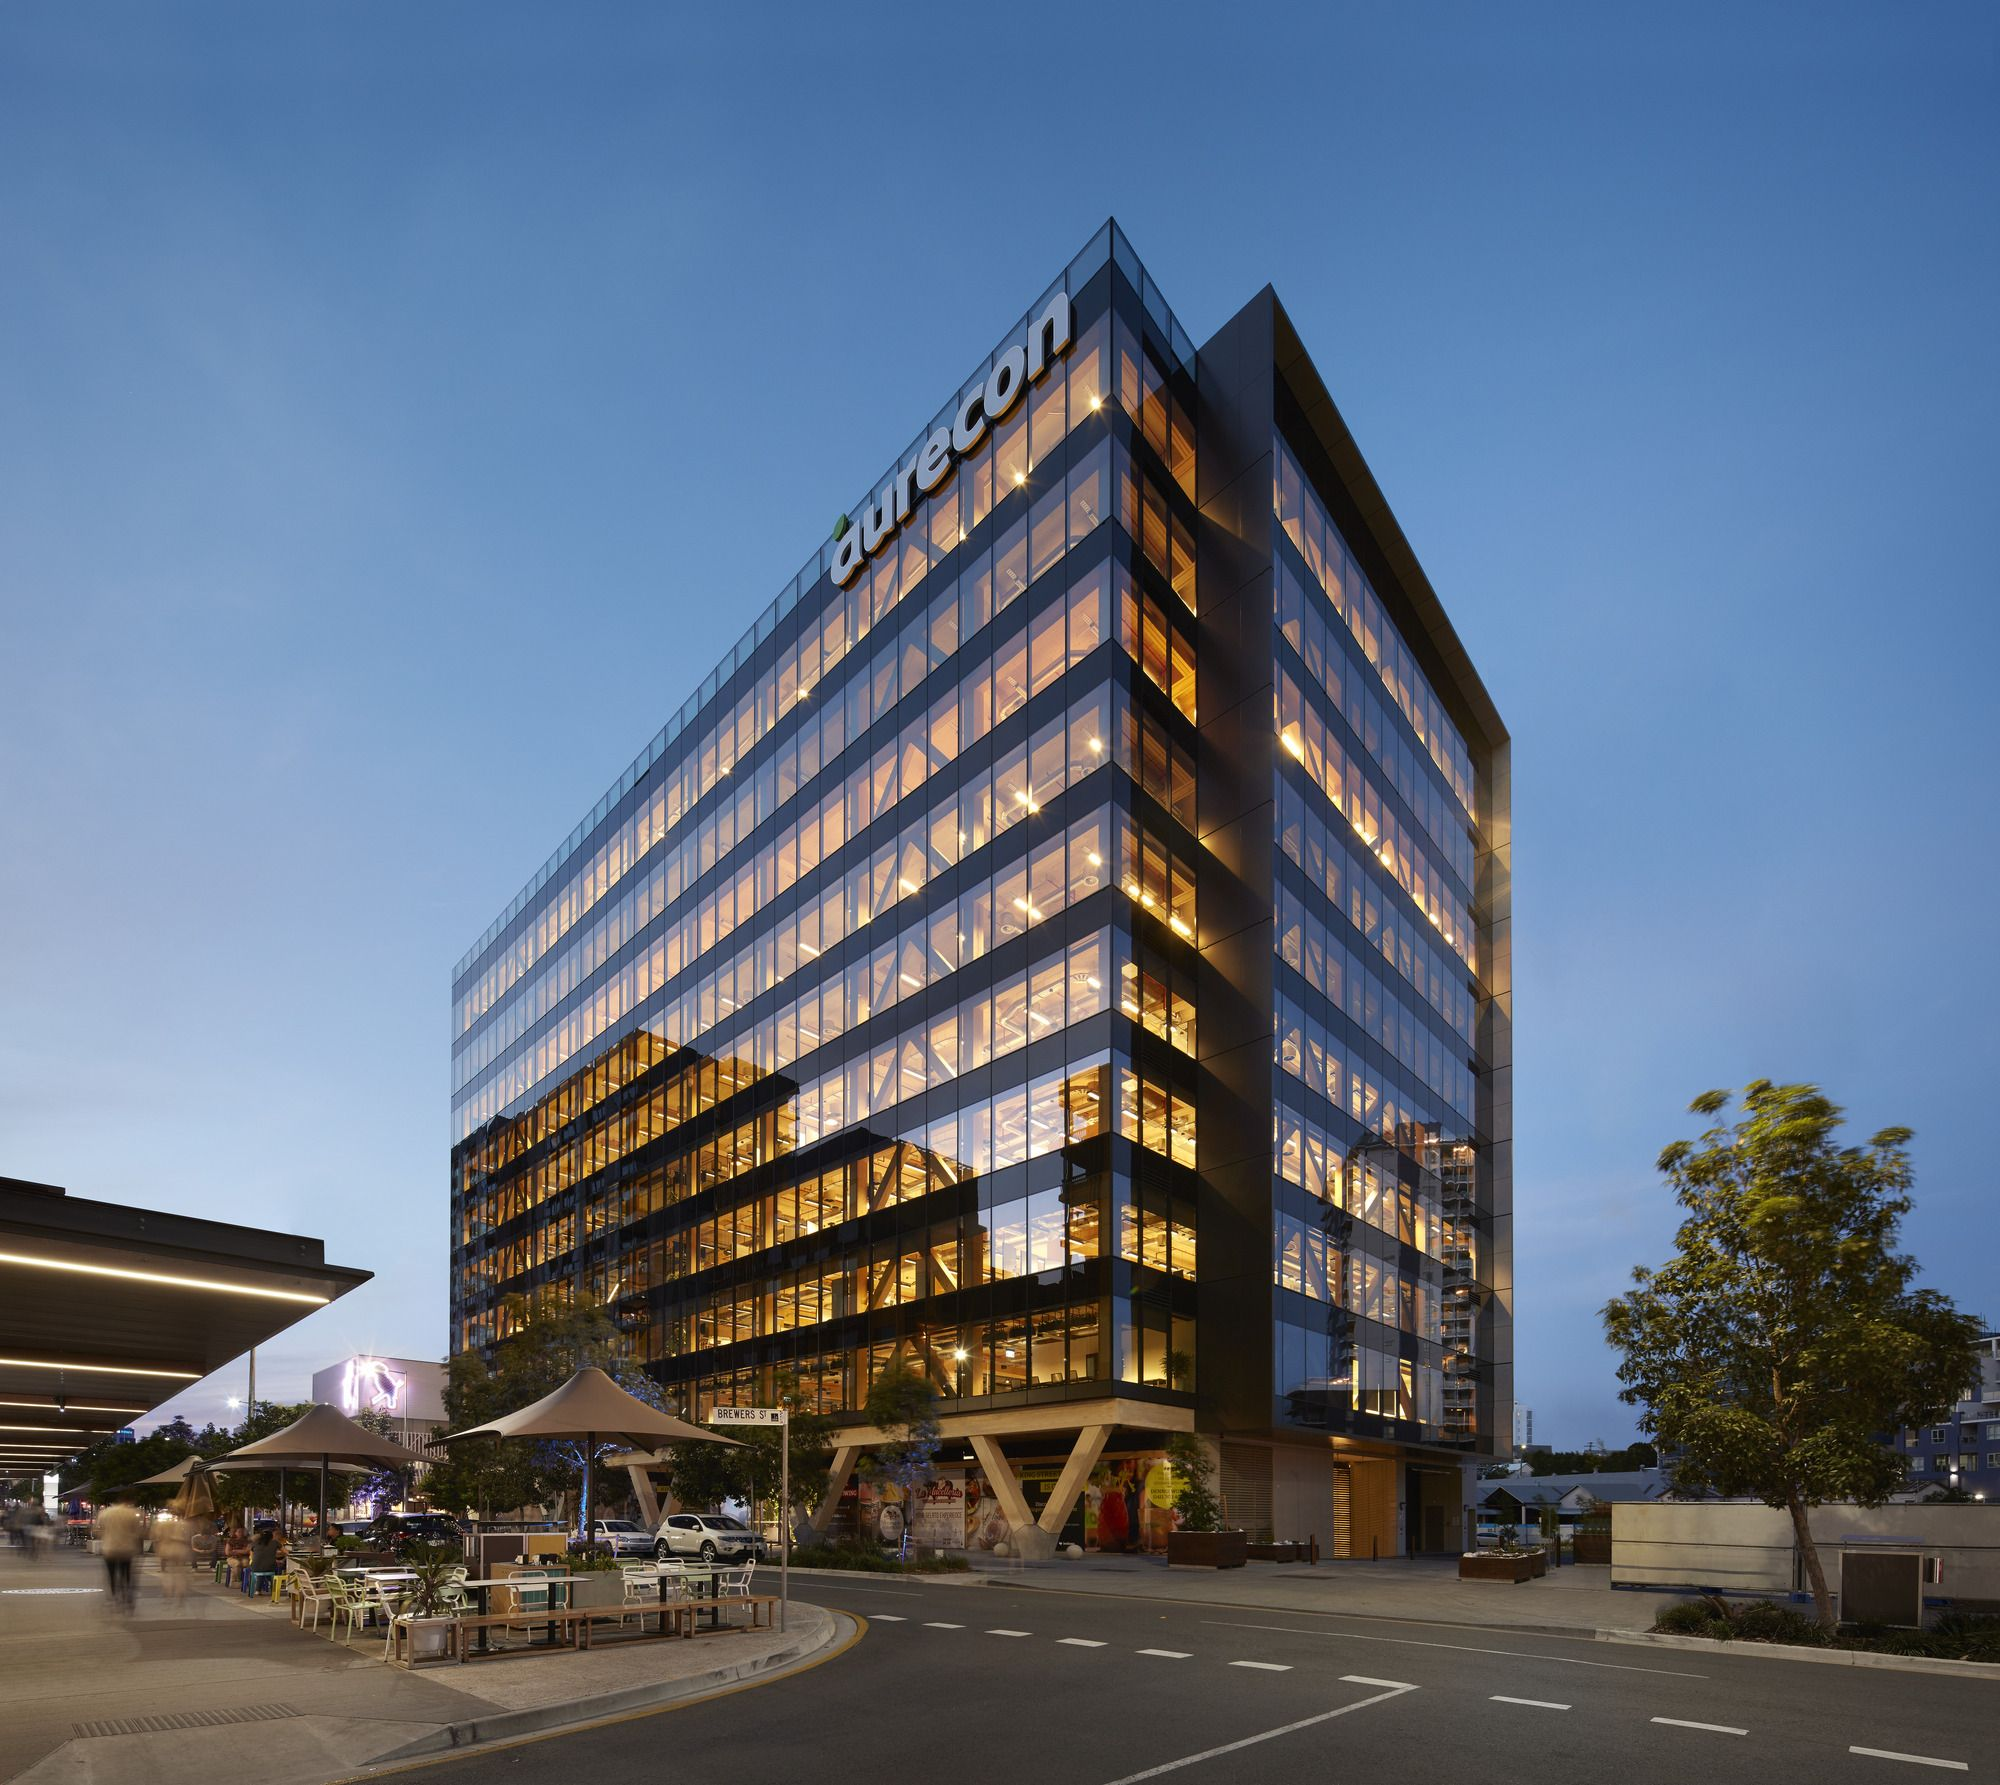 Australia S Largest Engineered Timber Commercial Building Has Opened In Brisbane Designed By Bates Smart At Timber Buildings Glass Building Wooden Buildings